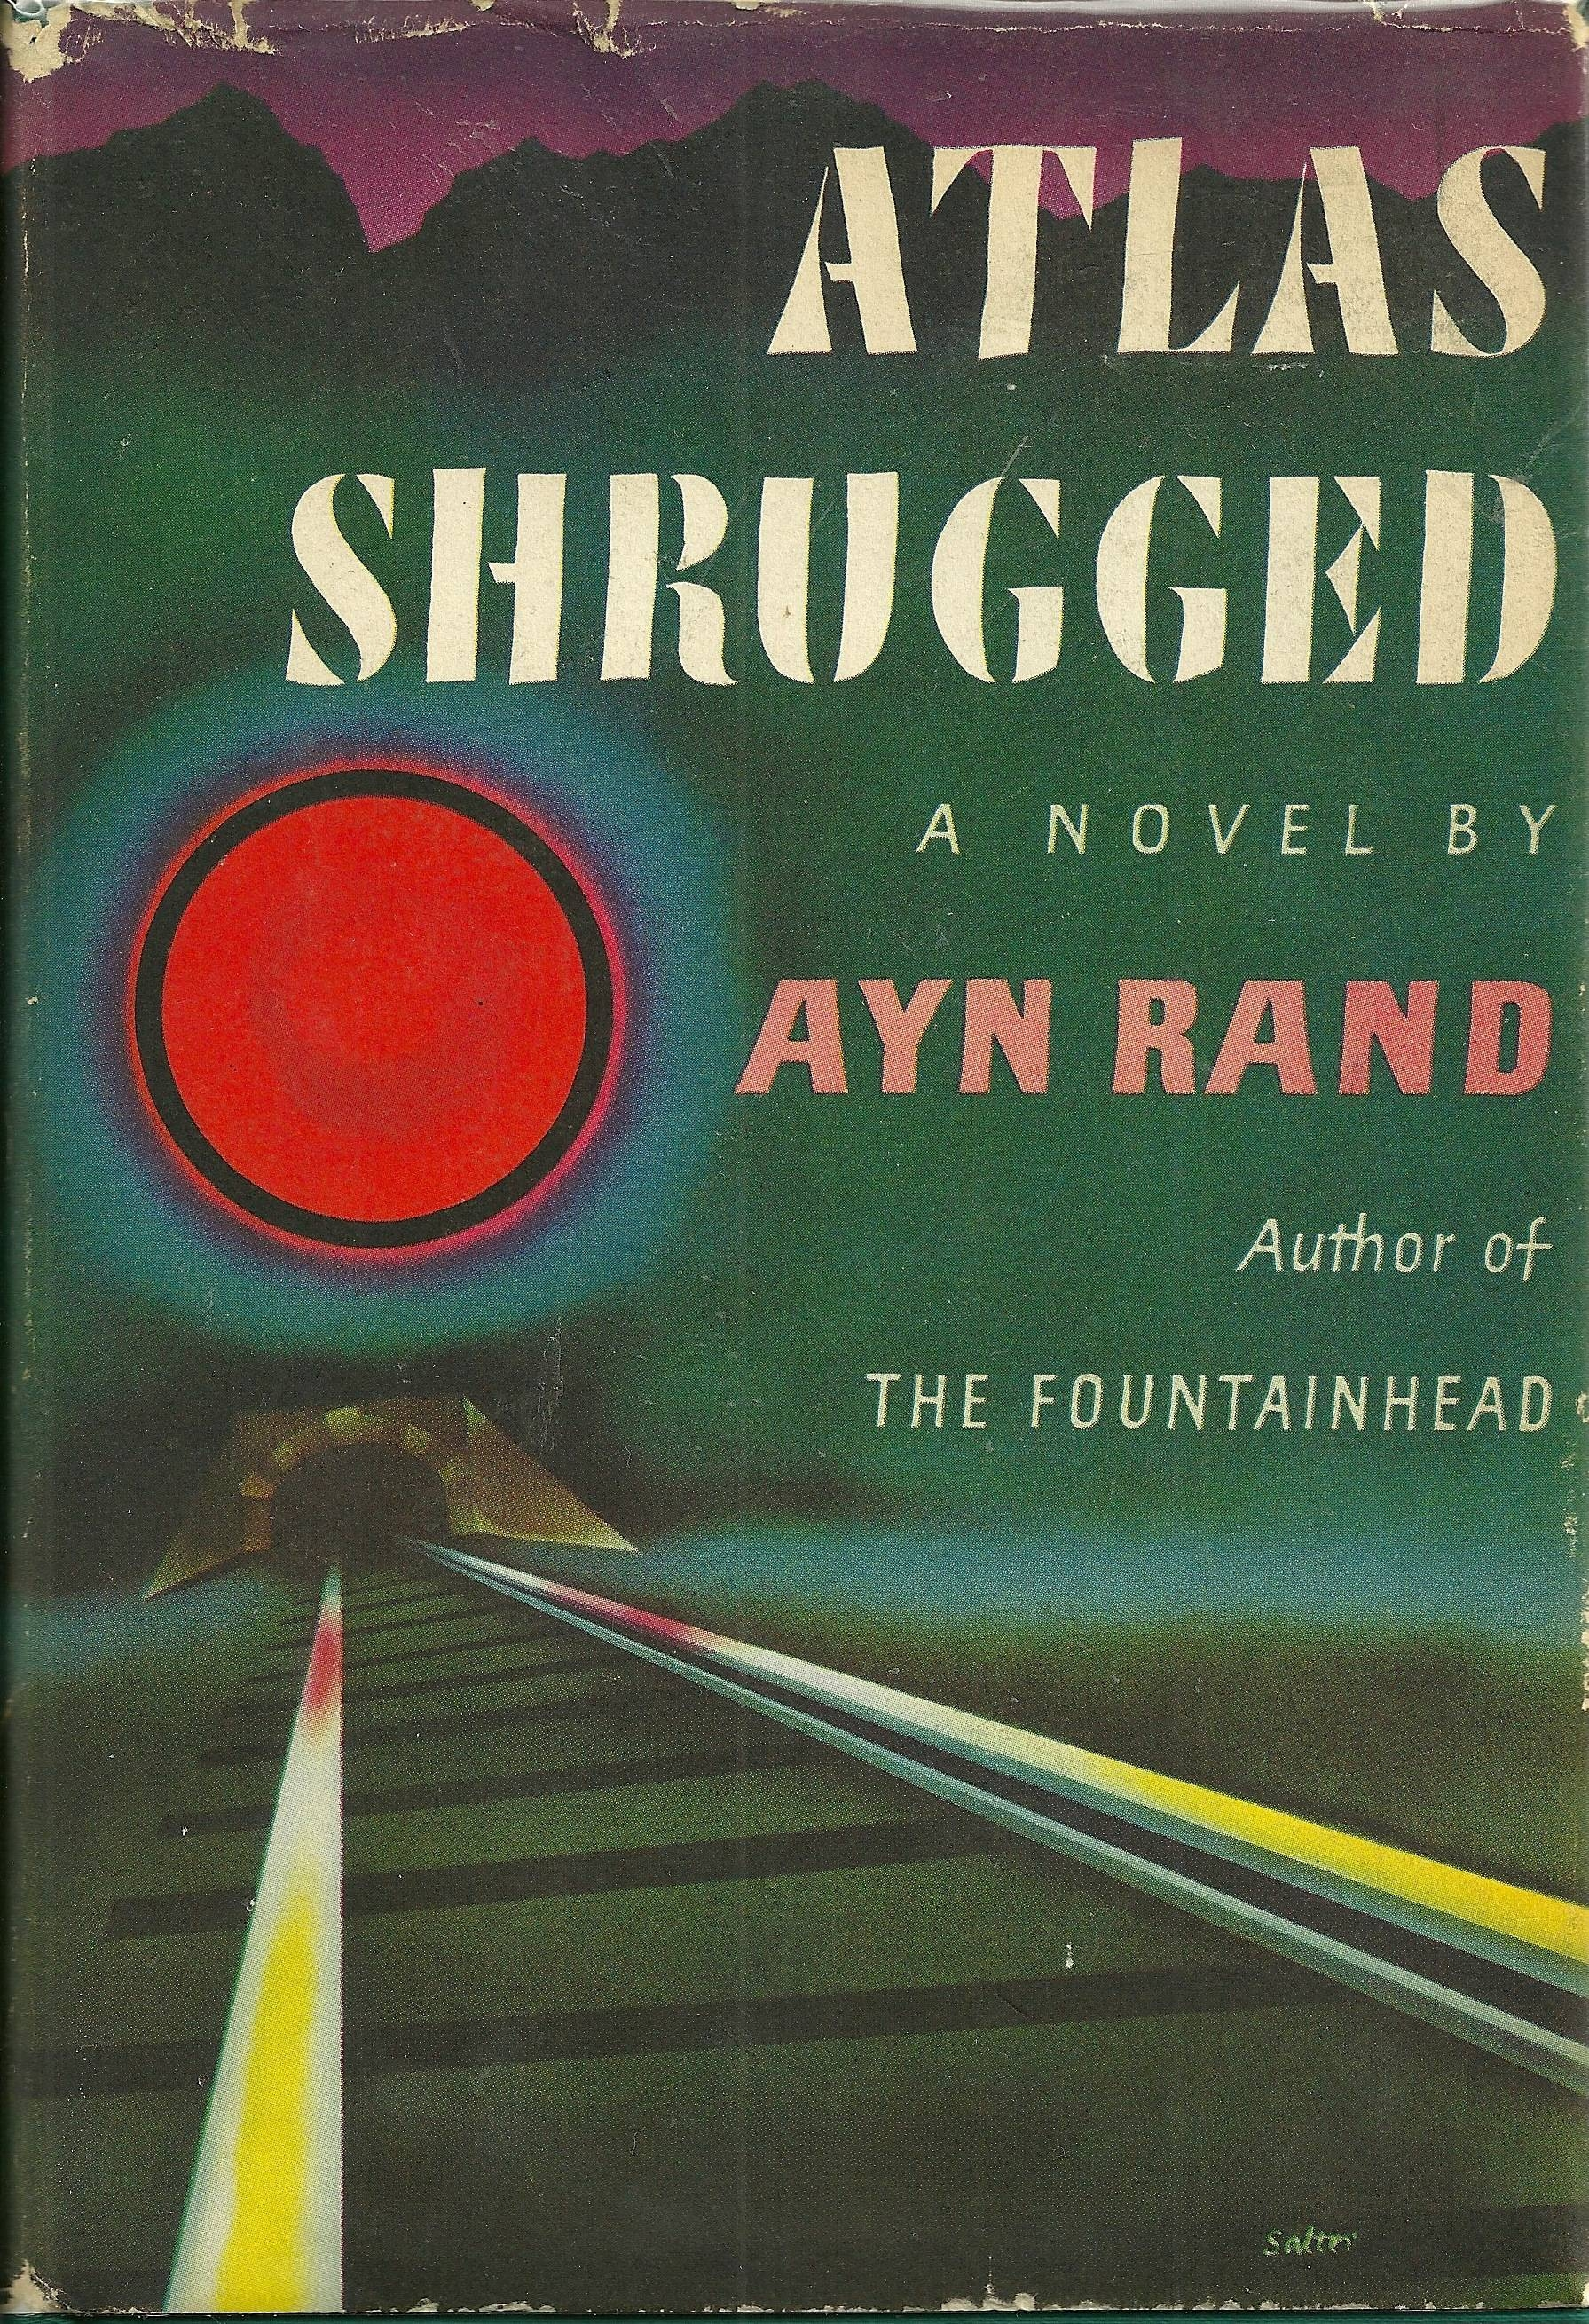 analysis of atlas shrugged Complete summary of ayn rand's atlas shrugged enotes plot summaries cover all the significant action of atlas shrugged.